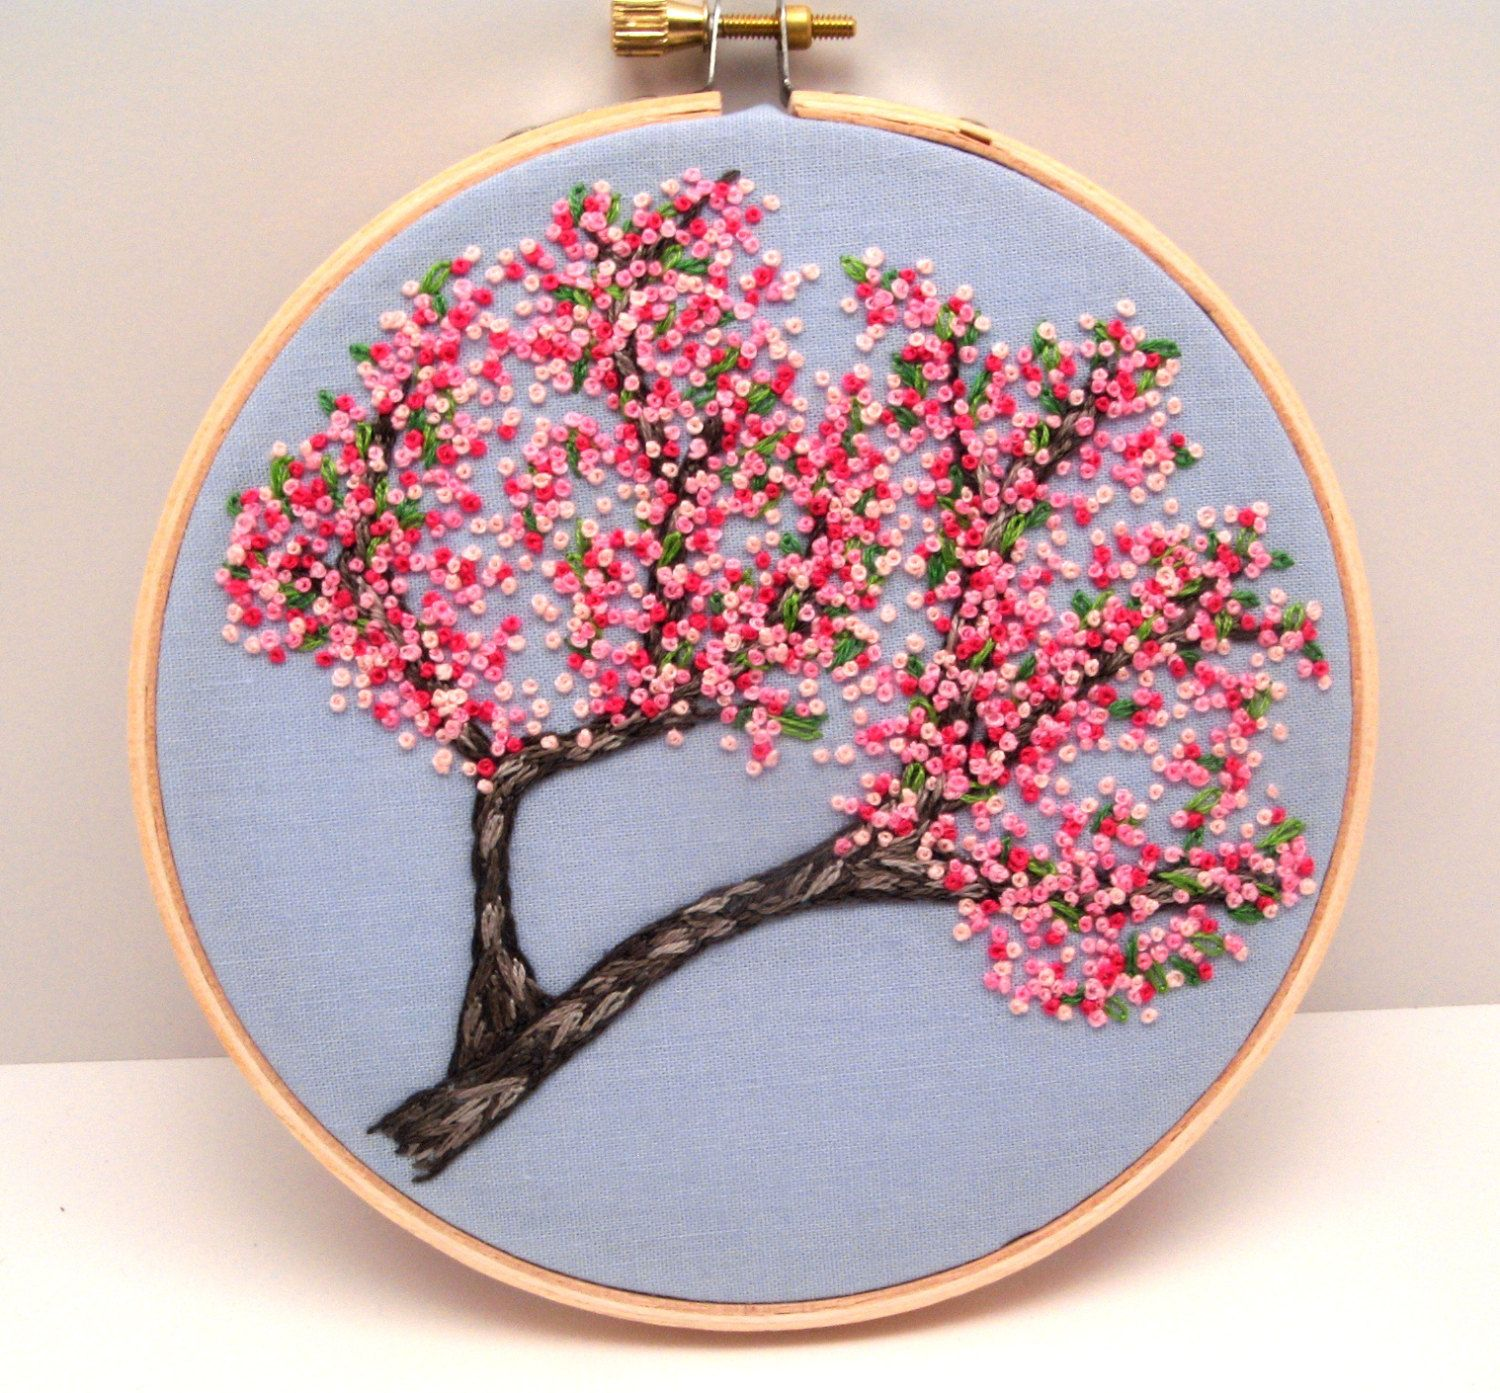 Cherry Blossoms Hand Embroidery Tutorial, Pattern Pdf Digital, Pink Spring  Flowers French Knot